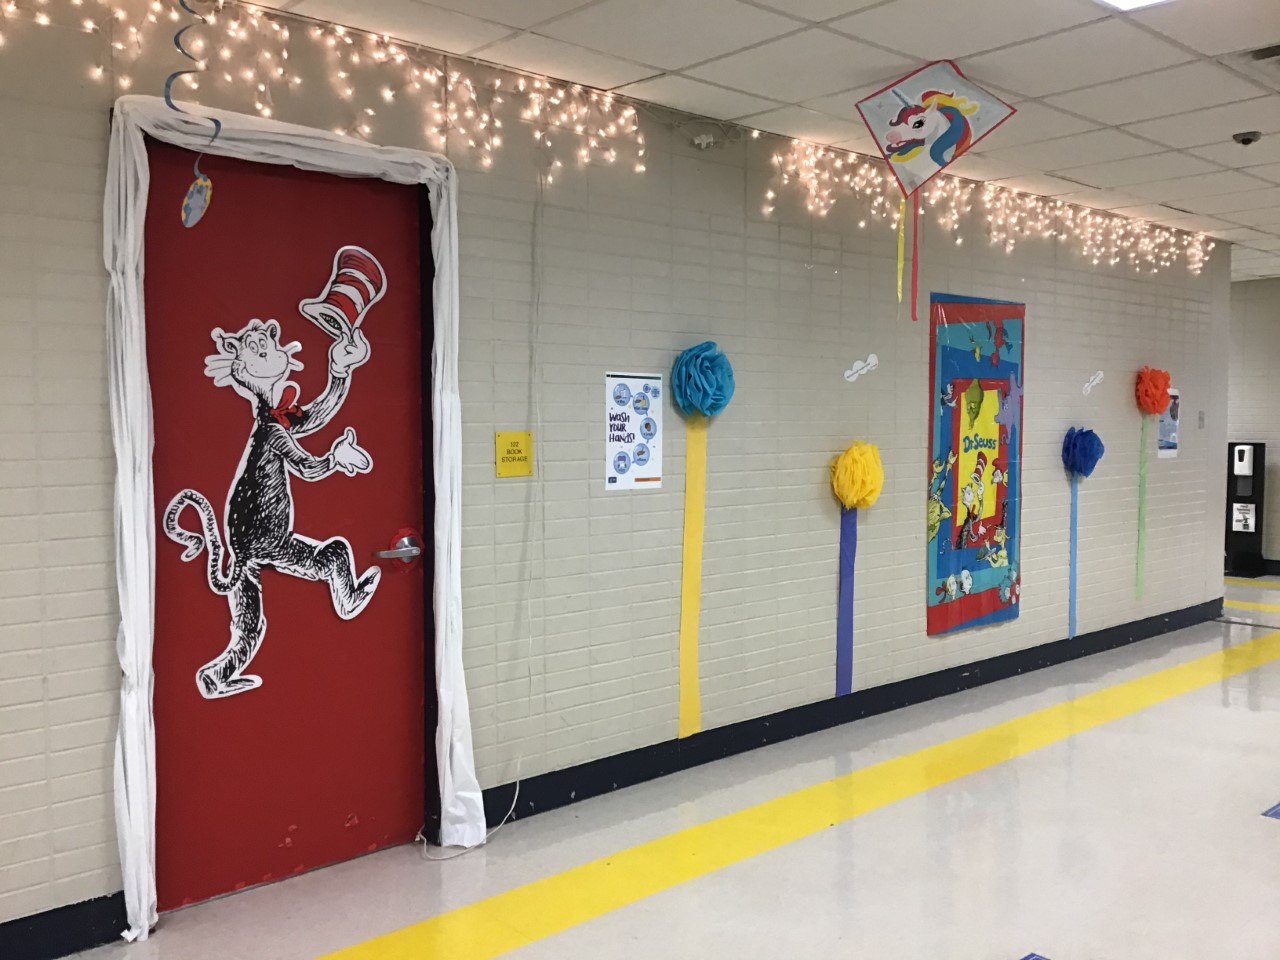 Dr. Seuss decoration in hall